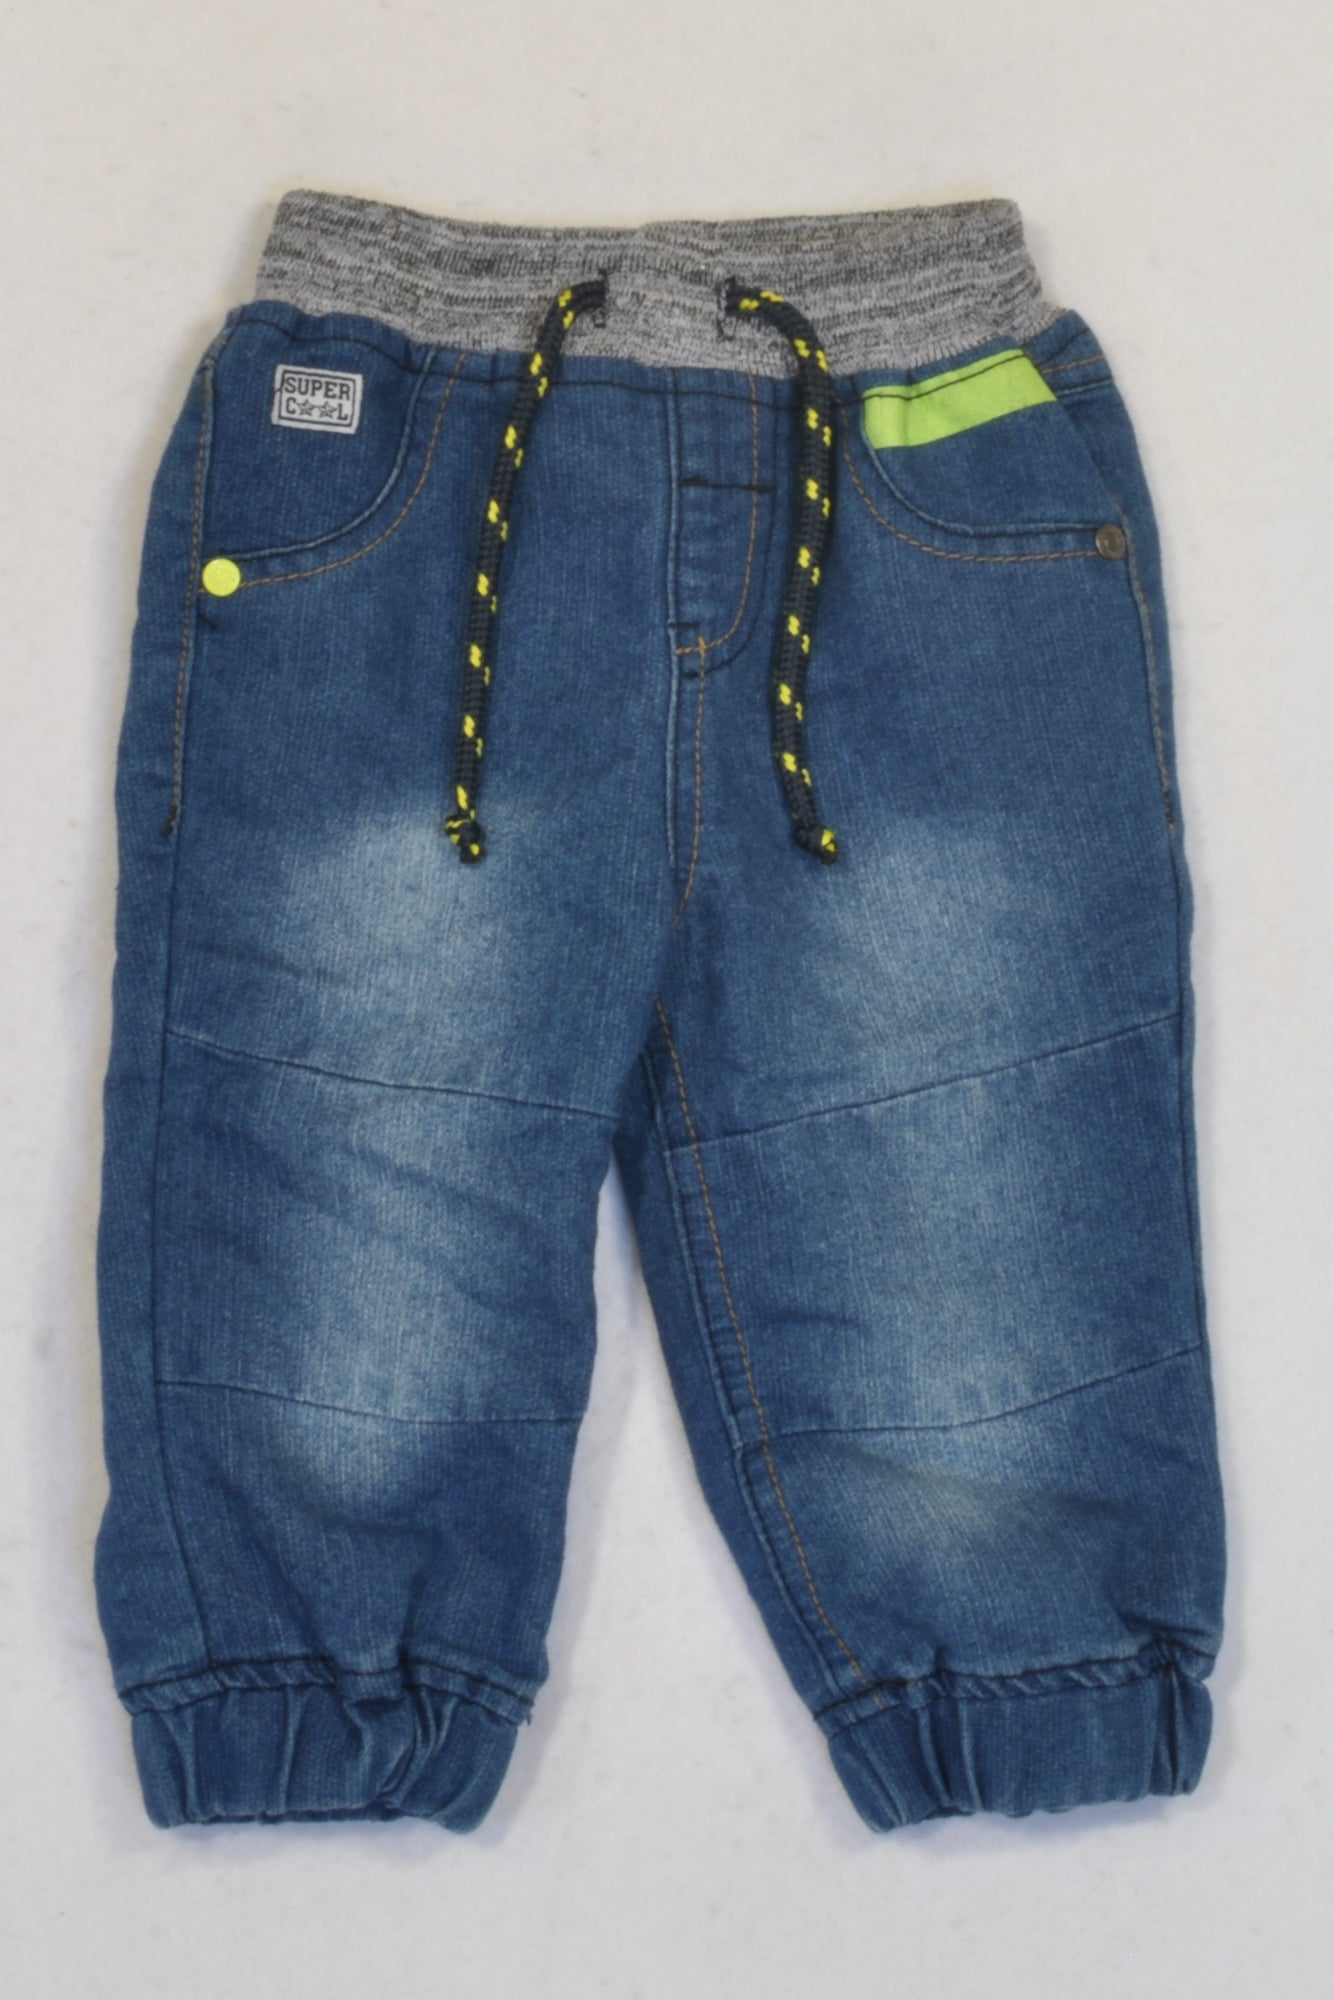 Ackermans Denim Grey Banded & Green Trim Jeans Boys 3-6 months